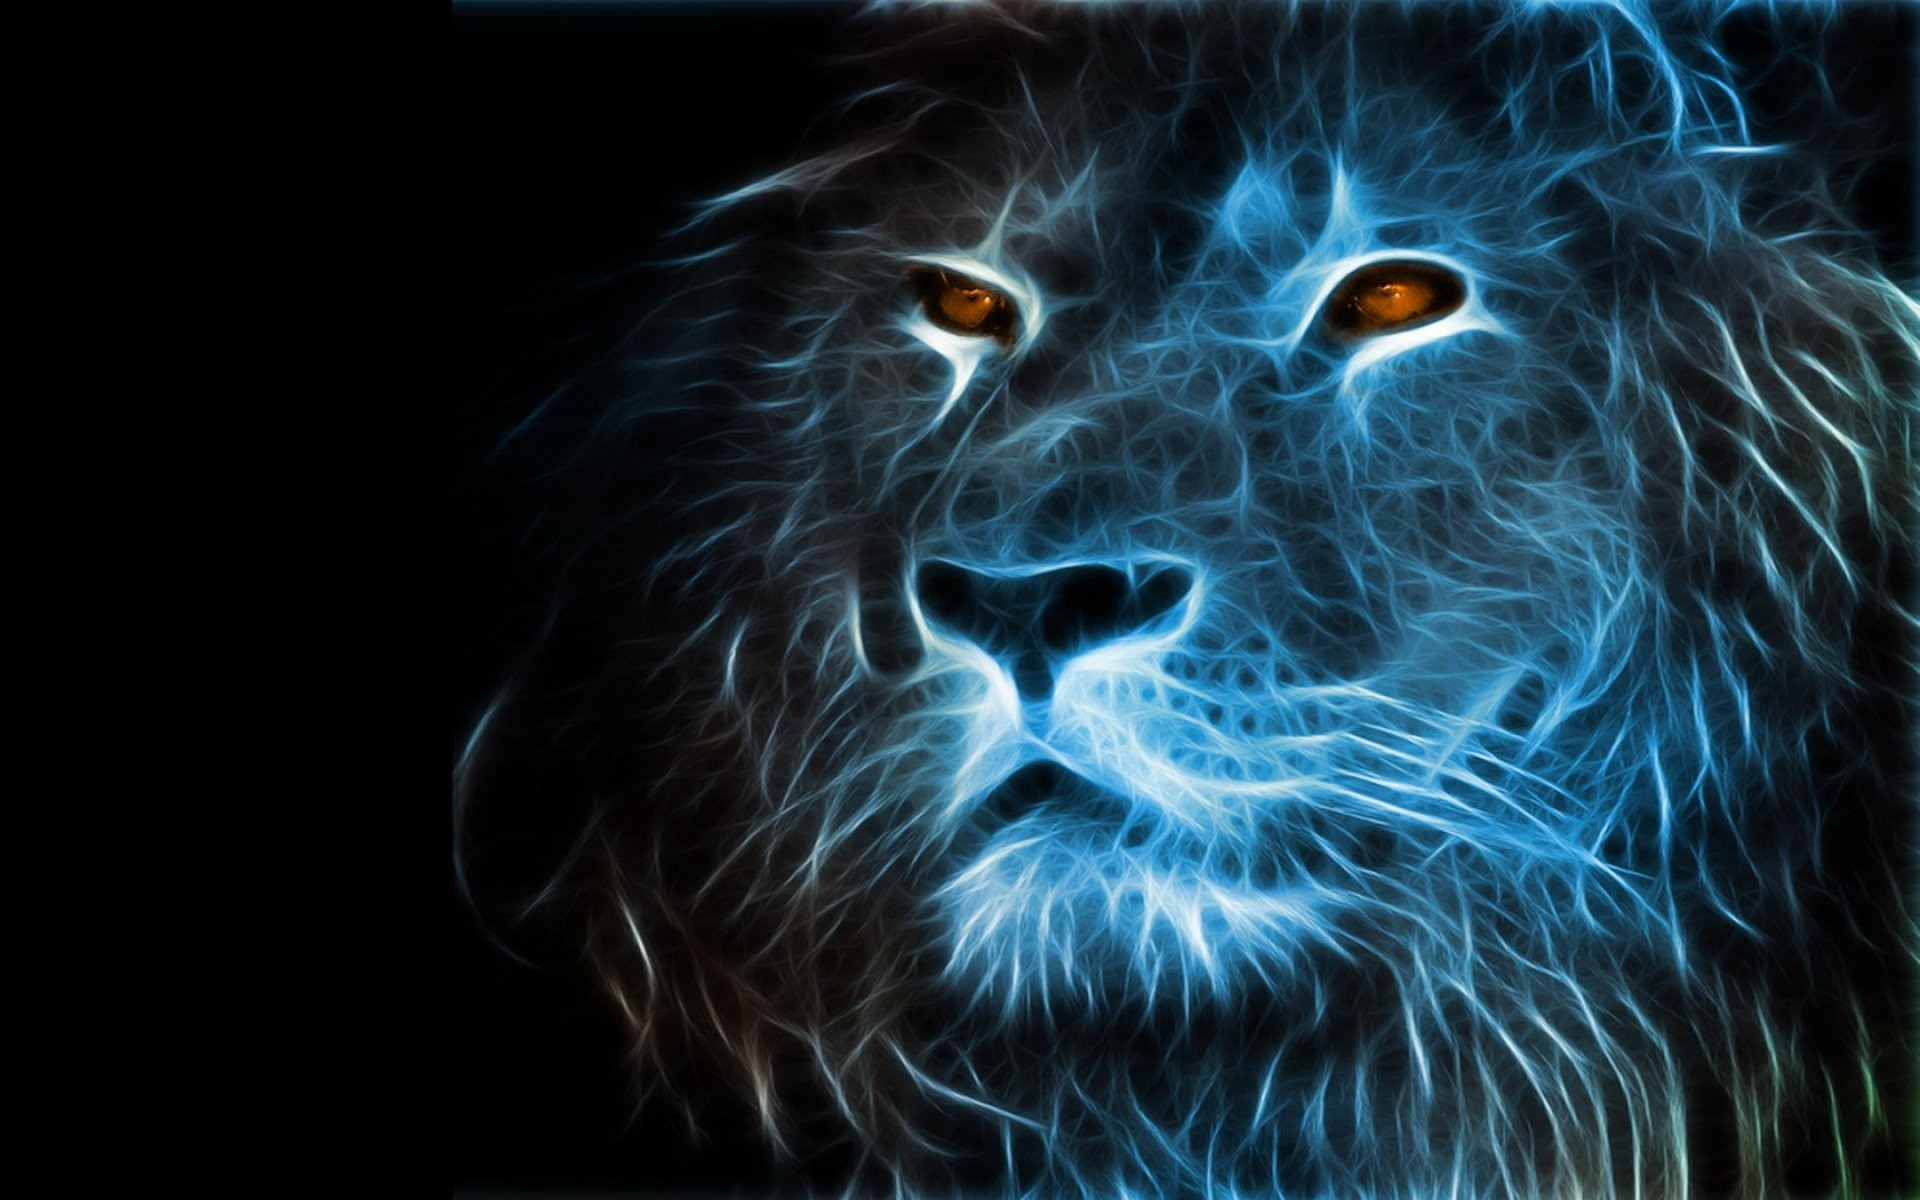 1920x1080 Wallpaper Rasta Lion Iphone Wallpapers